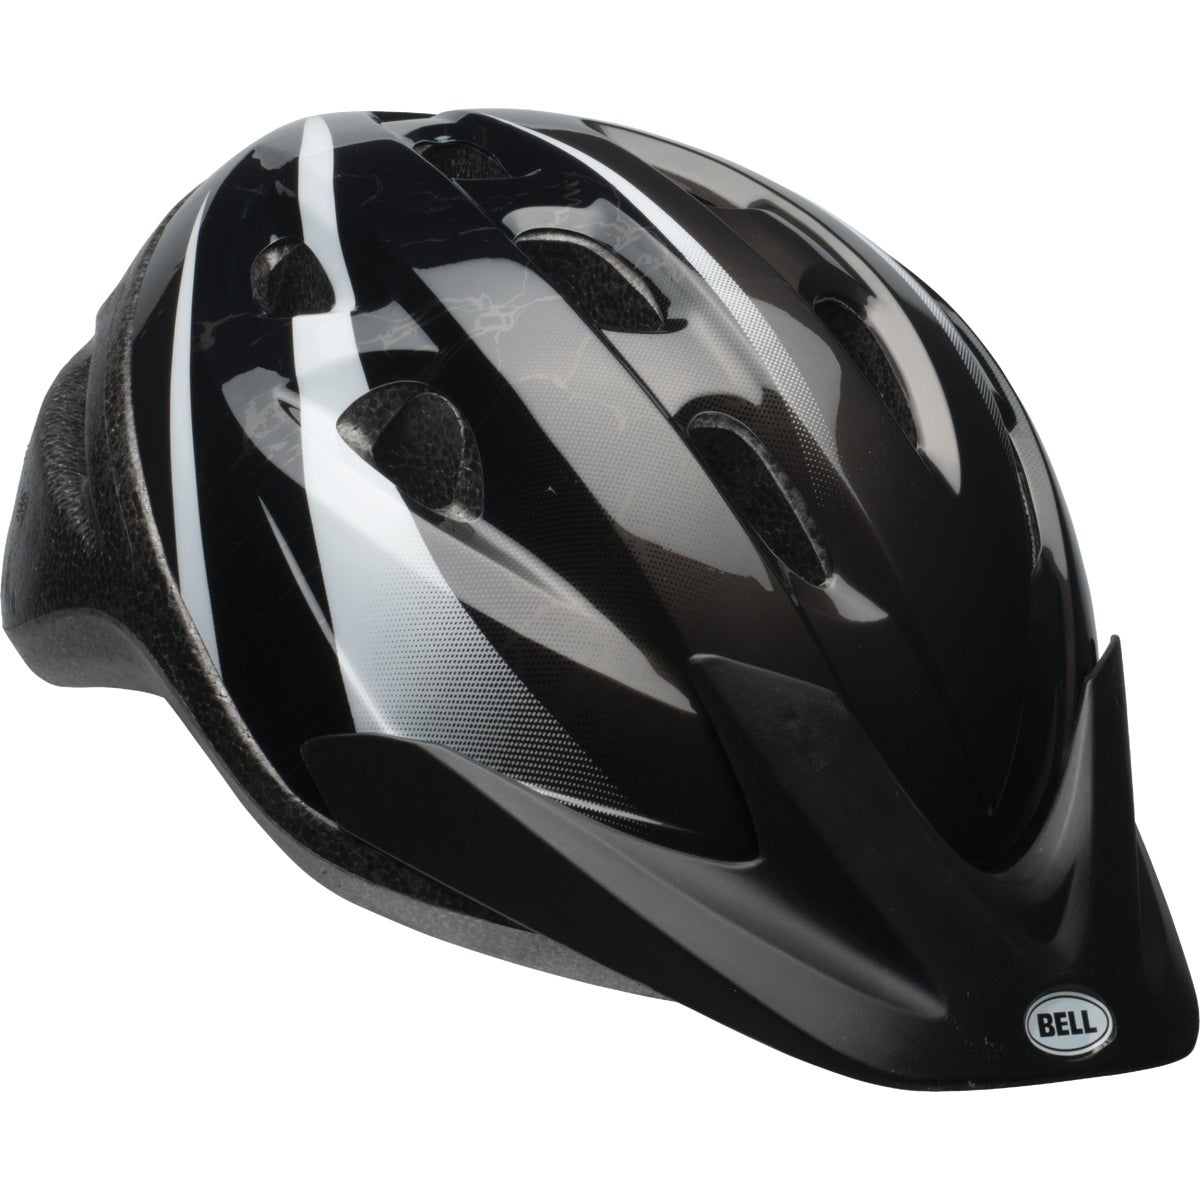 8+ BOYS YOUTH HELMET - 1007929 by Bell Sports